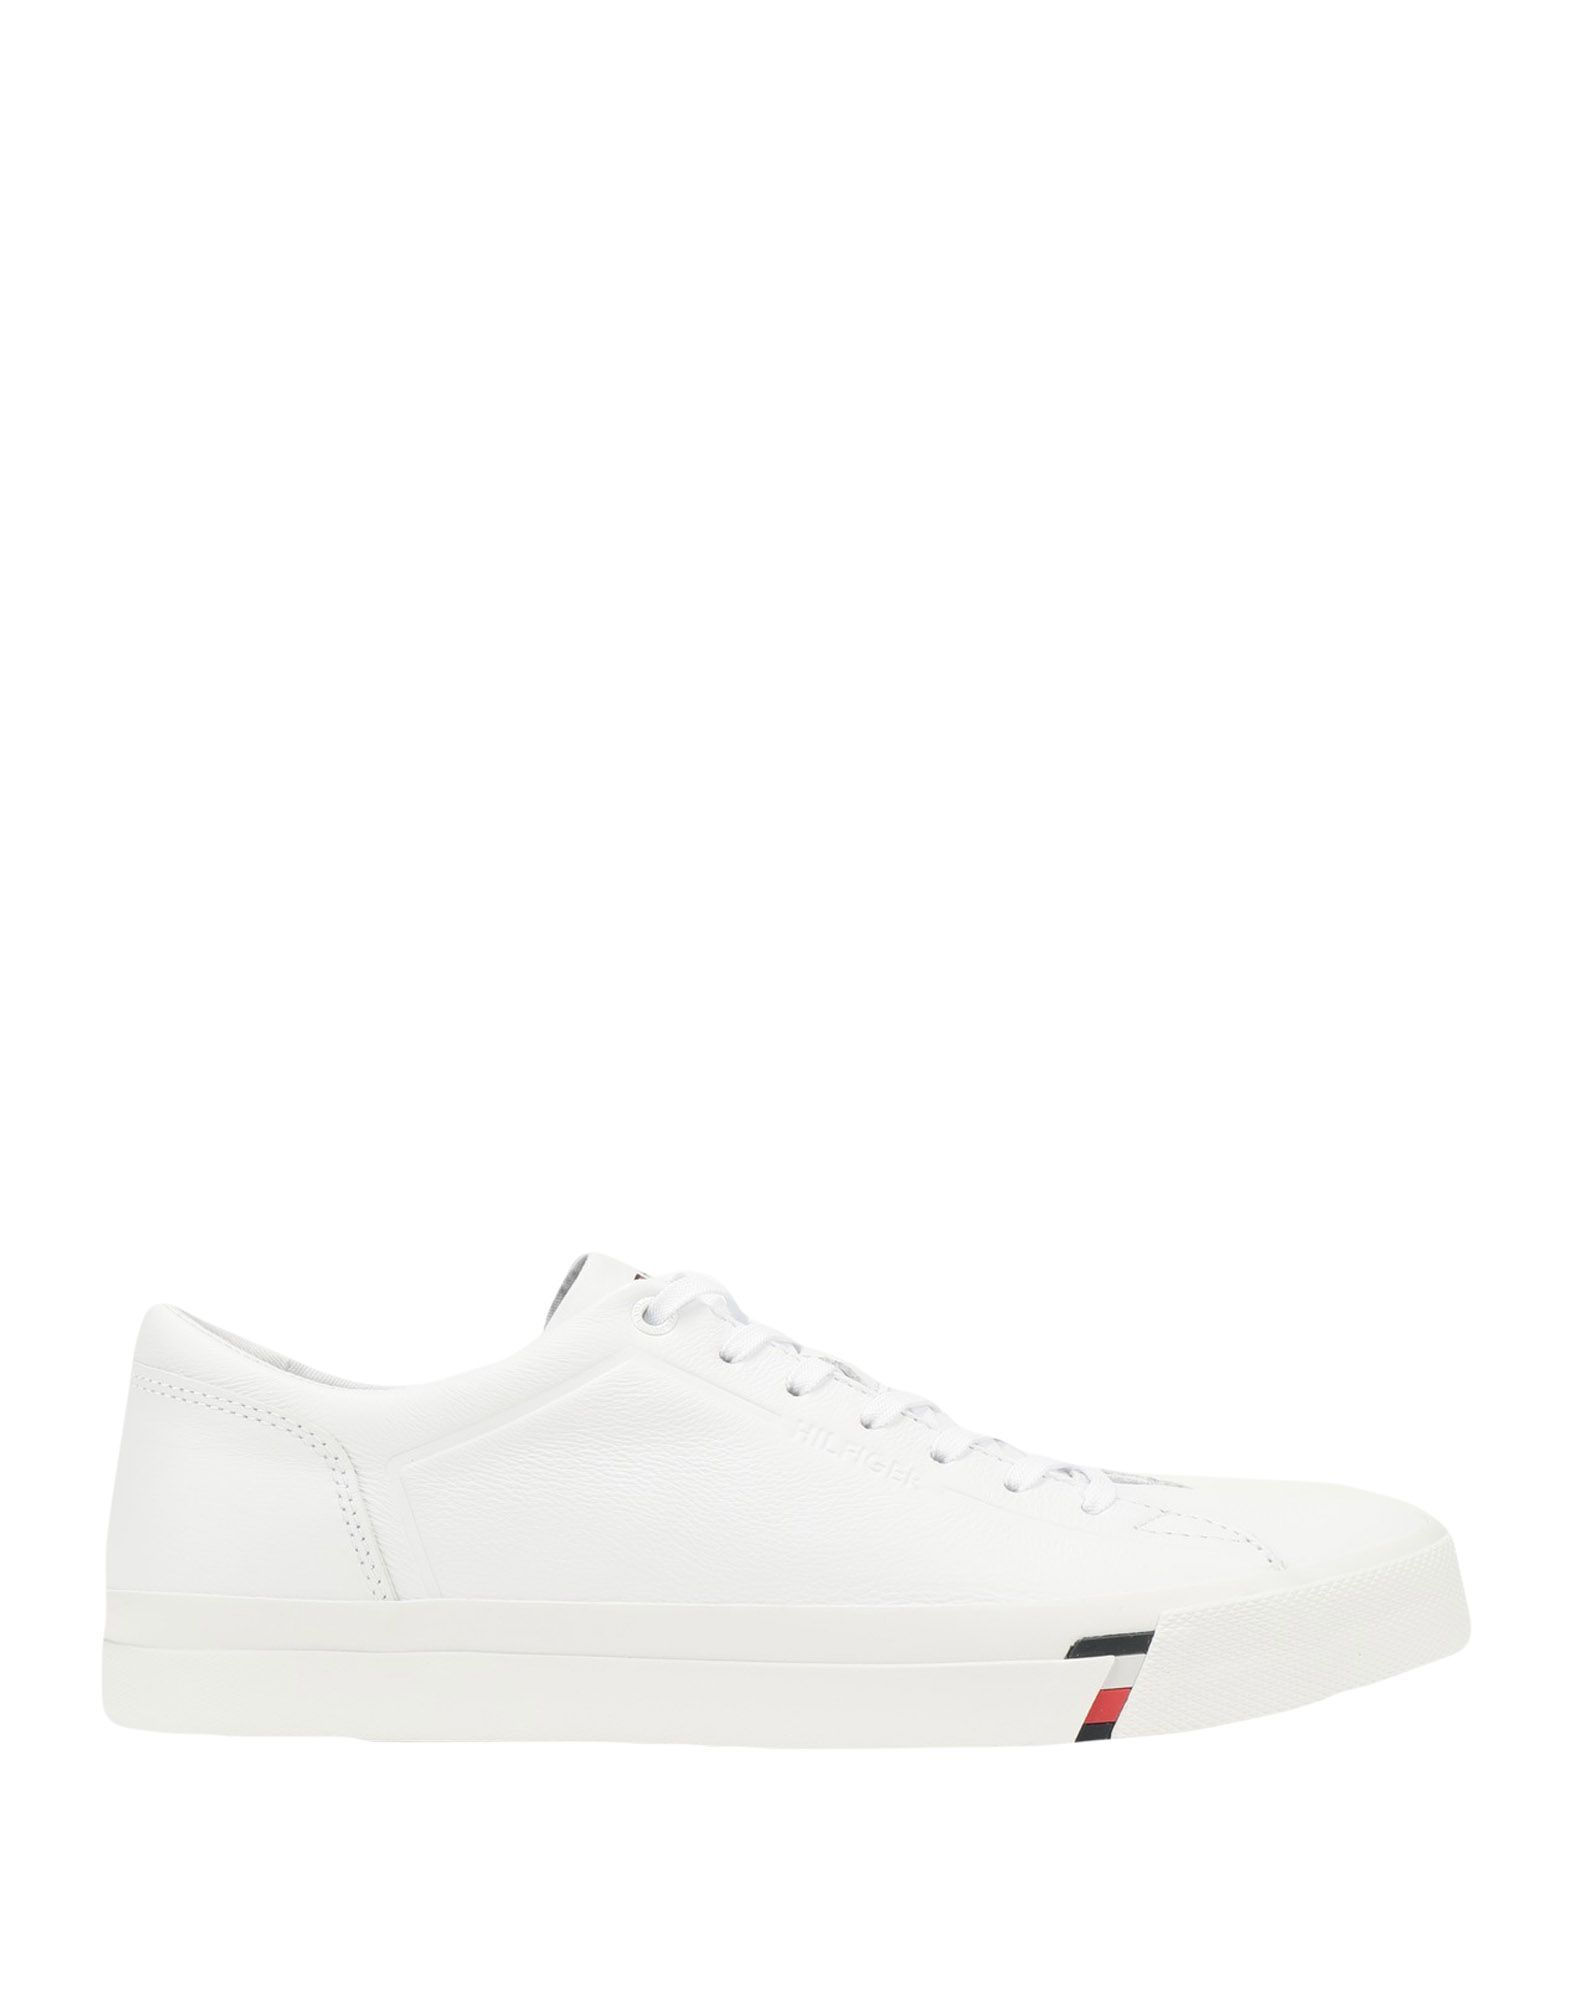 dedf56877 TOMMY HILFIGER SNEAKERS.  tommyhilfiger  shoes